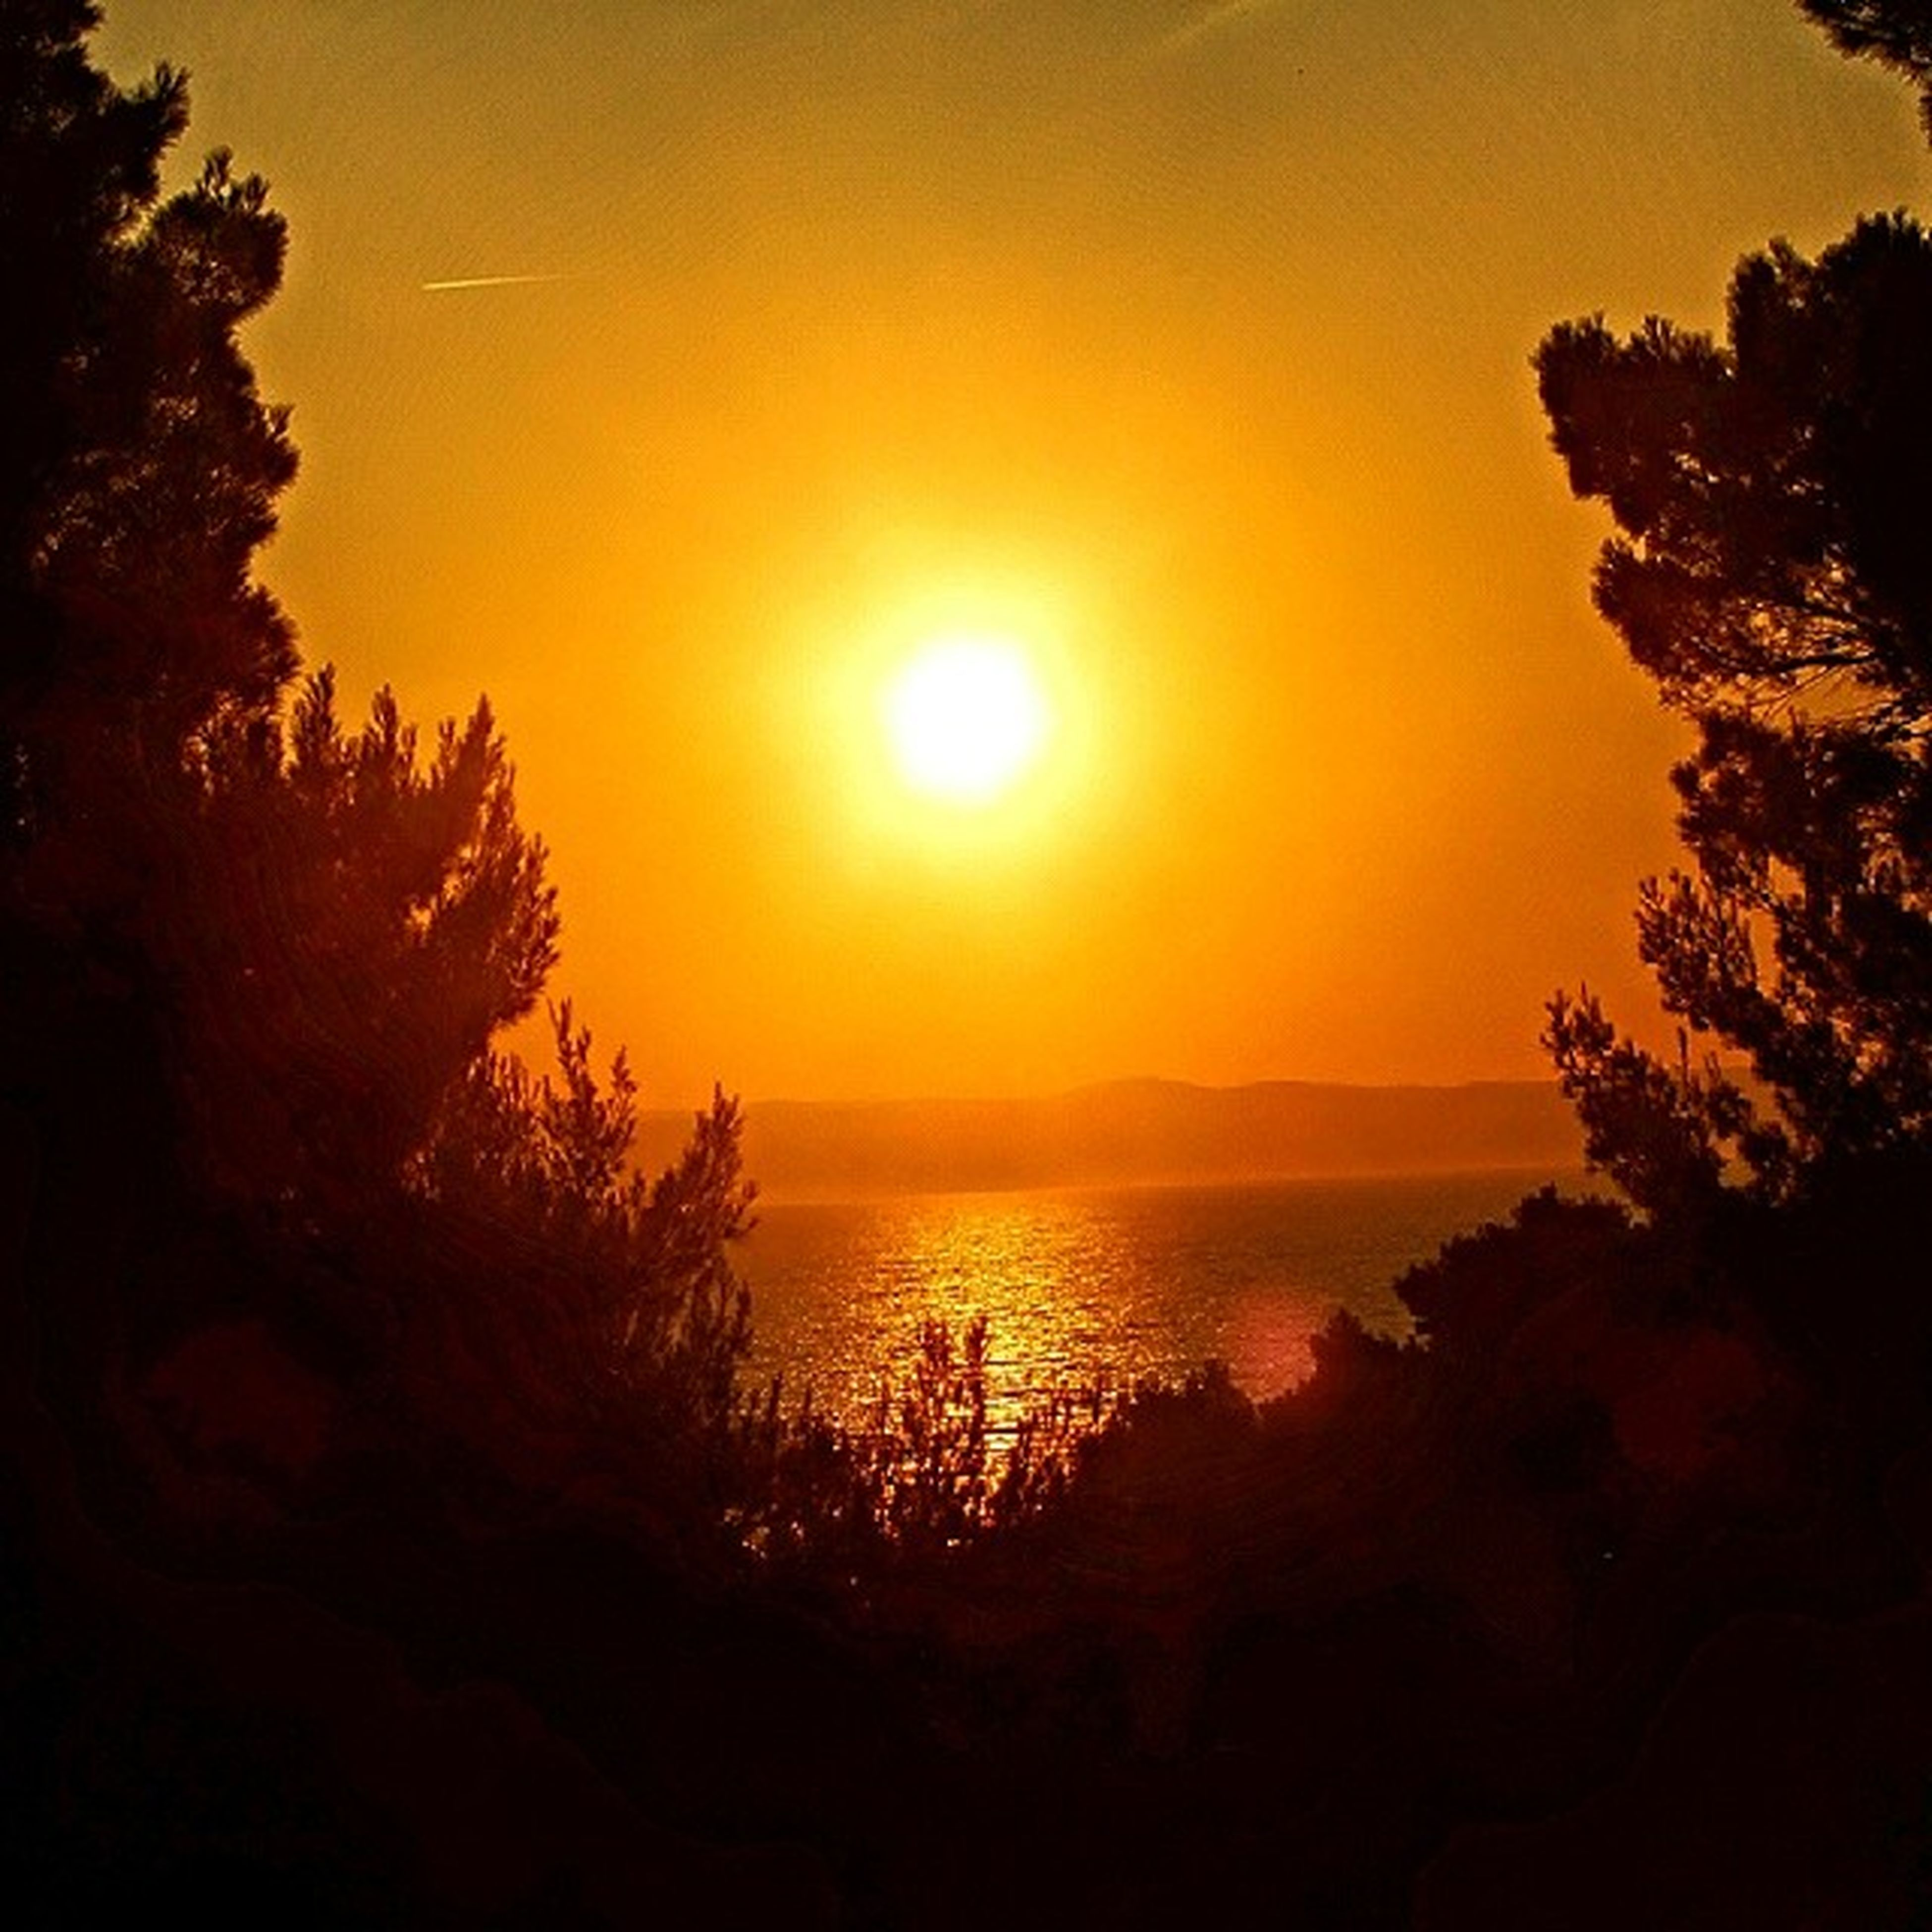 sunset, sun, tranquil scene, scenics, sea, tranquility, water, beauty in nature, horizon over water, silhouette, orange color, tree, sky, idyllic, nature, sunlight, reflection, beach, majestic, outdoors